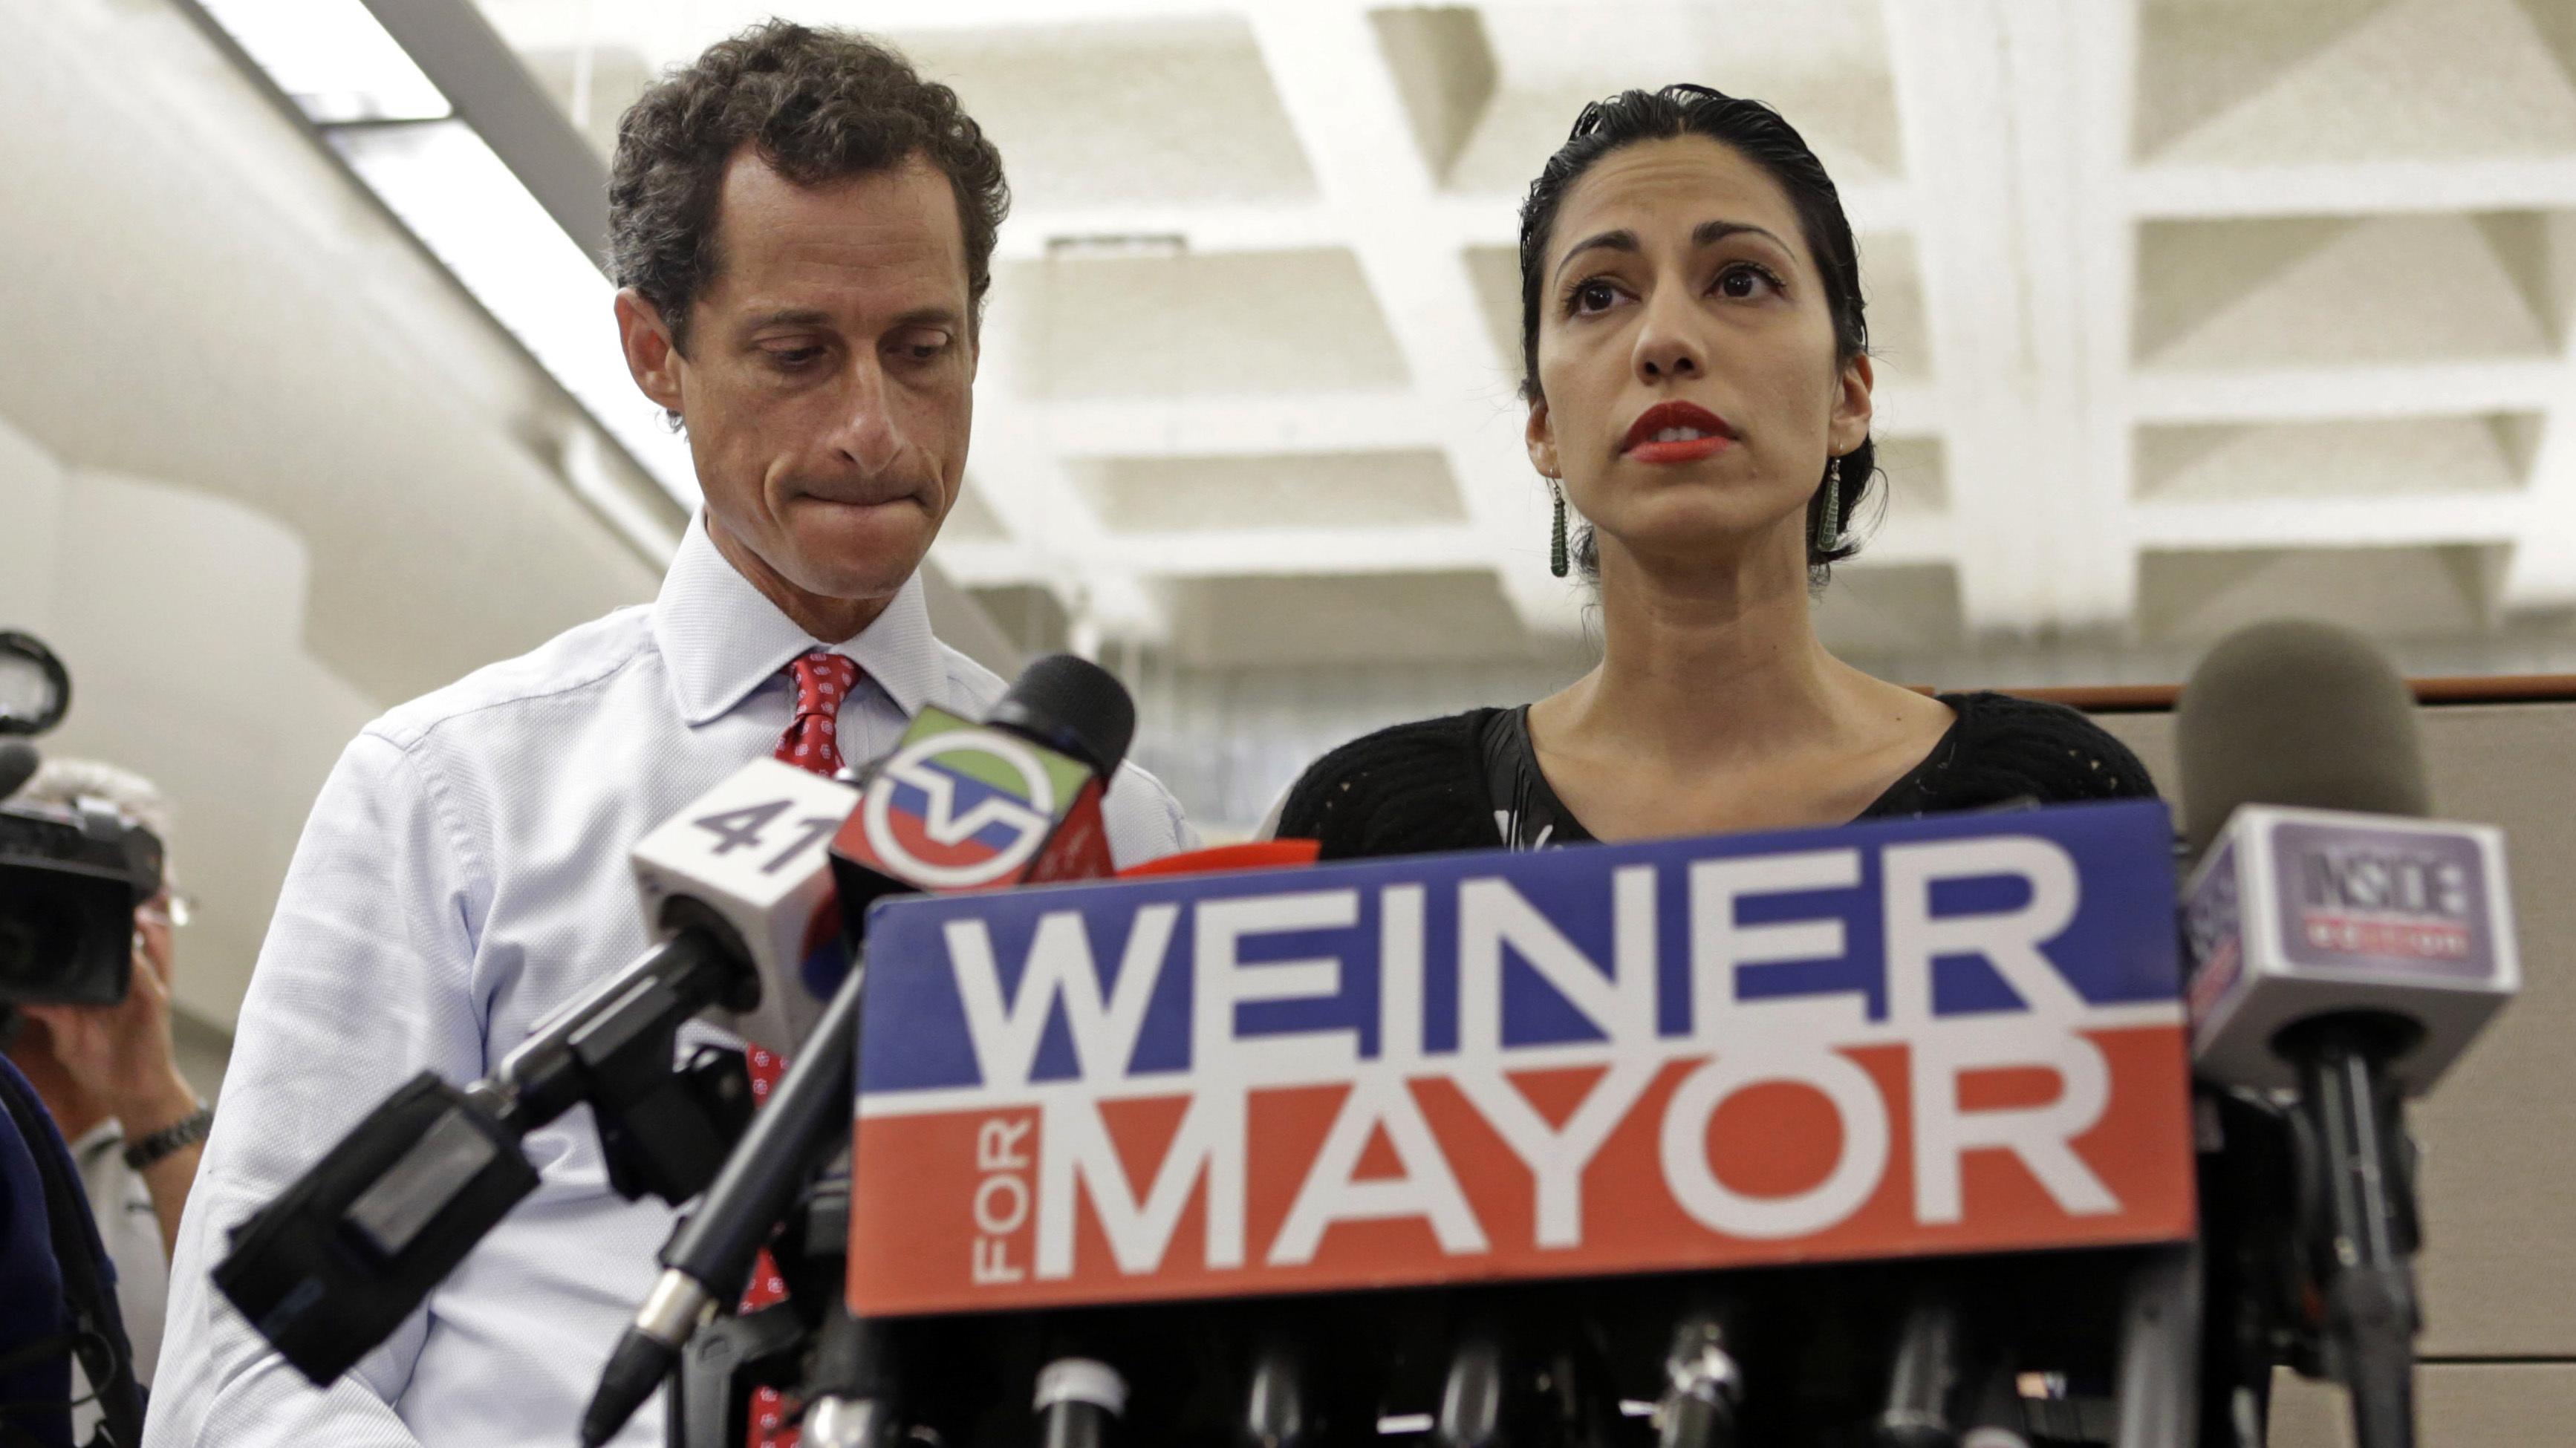 Anthony Weiner (left) and Huma Abedin at a news conference in 2013 during Weiner's mayoral campaign. (Photo by Kathy Willens/Associated Press)